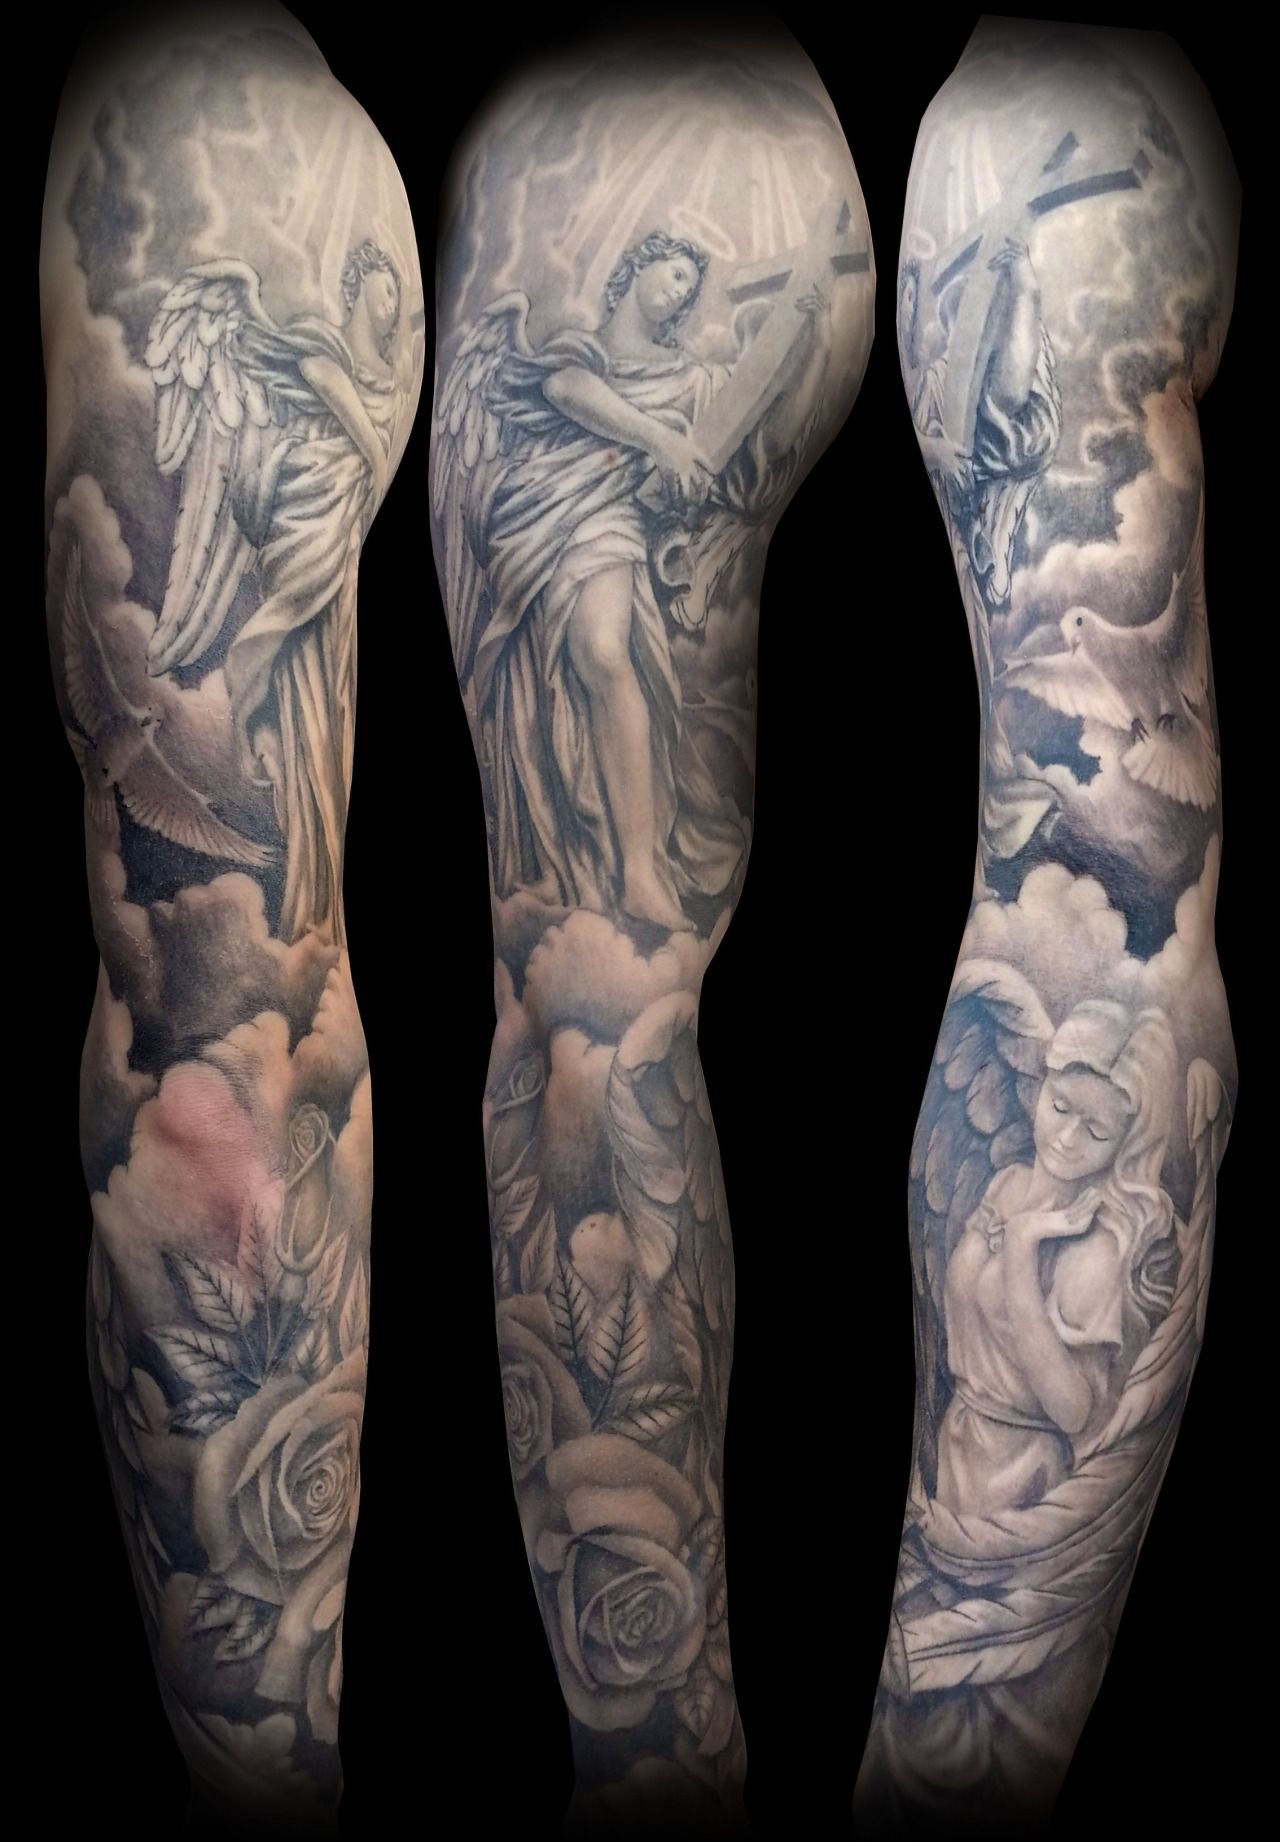 Pin By Rudy Galbier On Favorite Tattoos Pinterest Tatouage